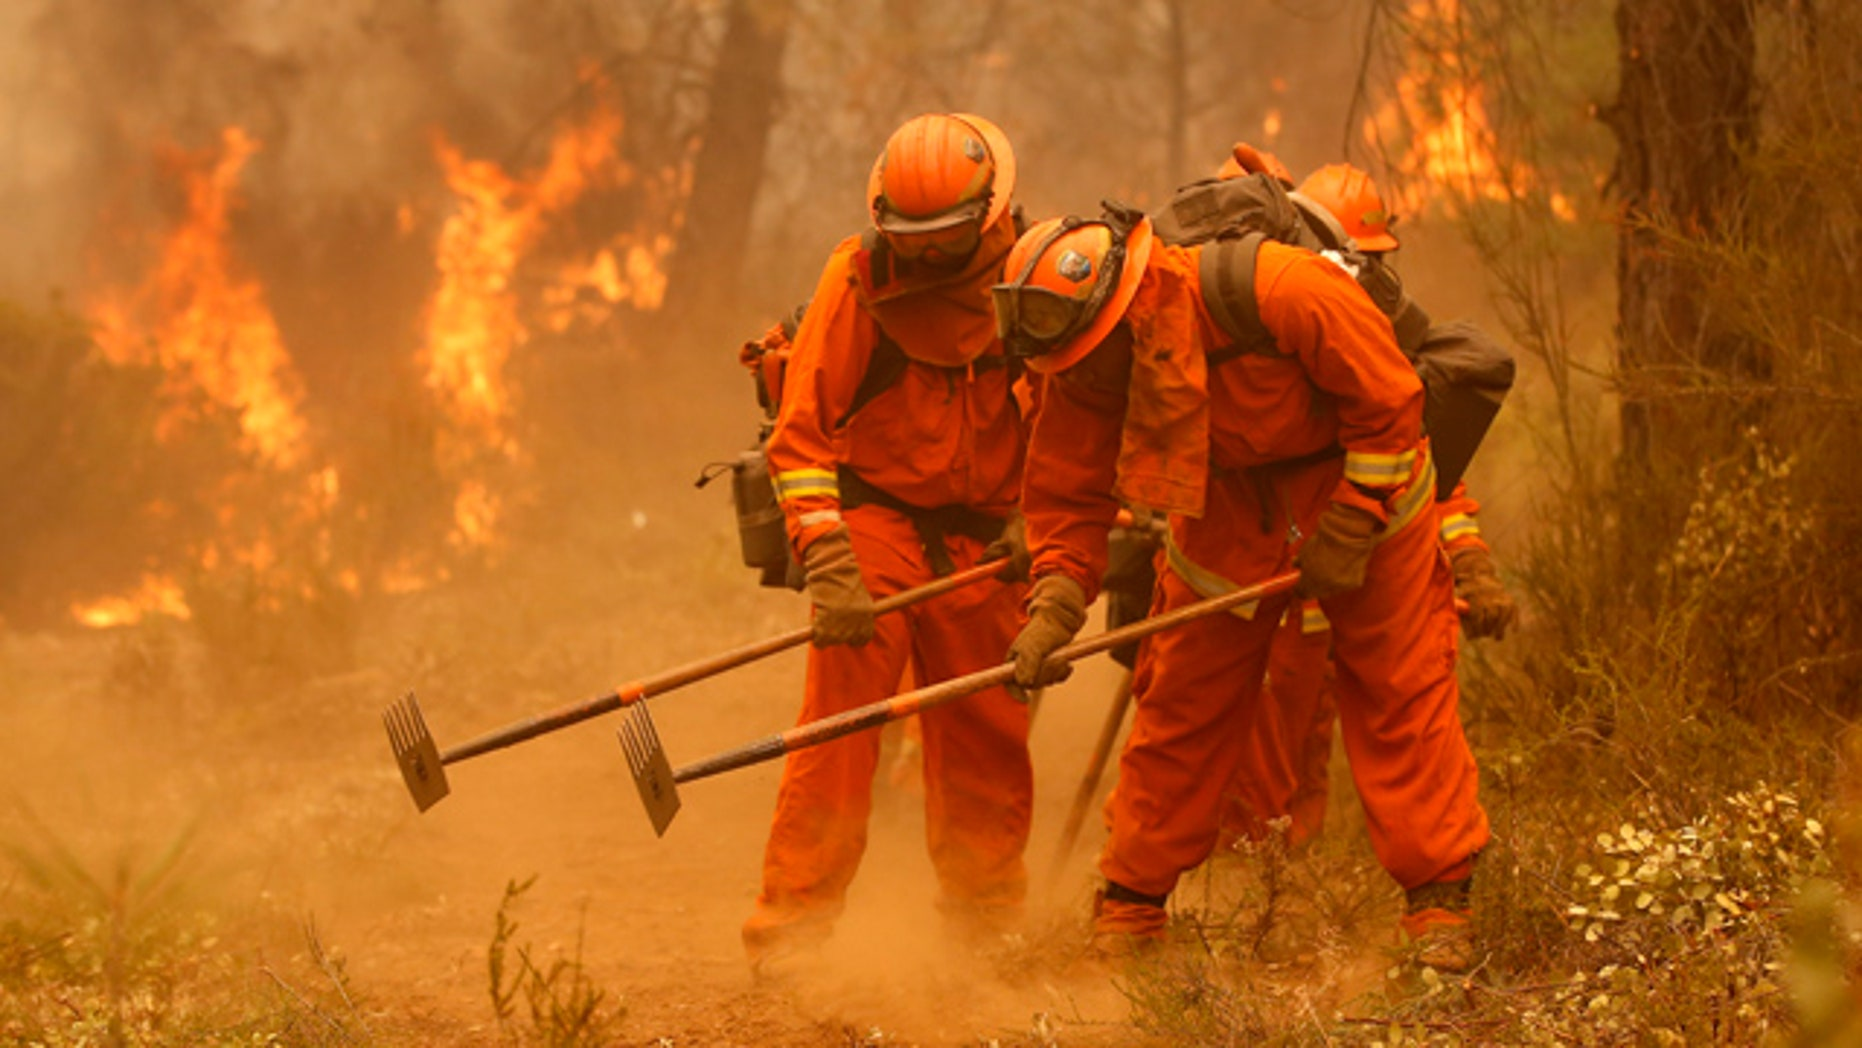 Sept. 12, 2015: A California Department of Corrections and Rehabilitation inmate work crew builds a containment line ahead of flames from a fire near Sheep Ranch, Calif. (AP Photo/Rich Pedroncelli, File)